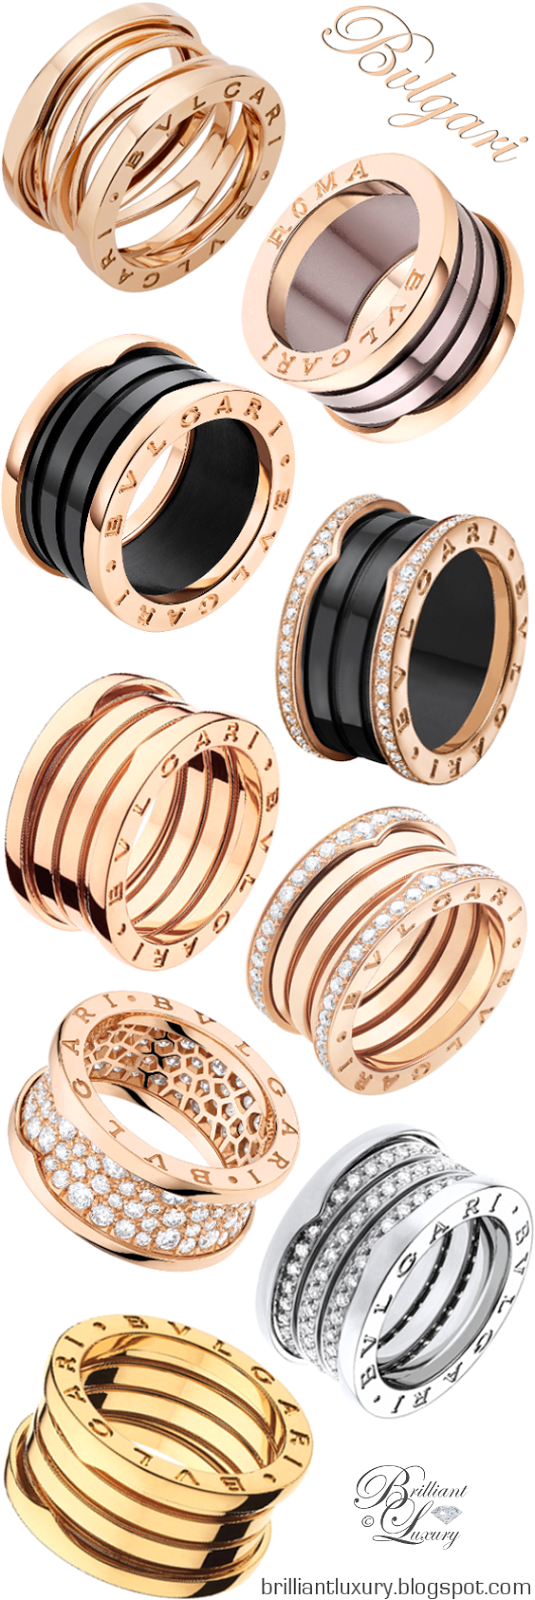 Brilliant Luxury ♦ Bvlgari B.Zero1 Rings UDATED